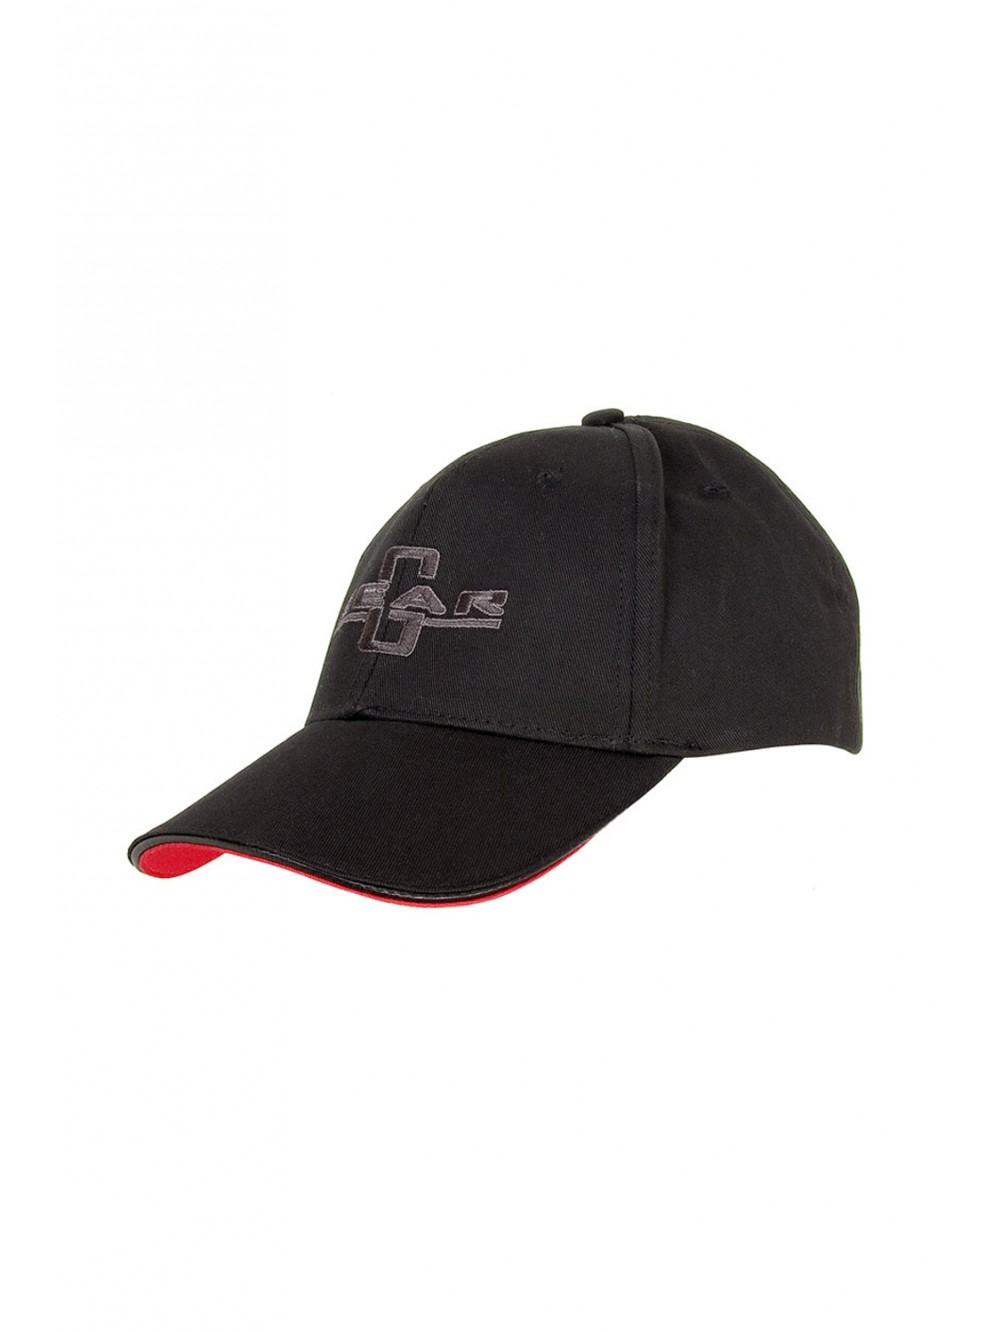 MENS CAP - Black